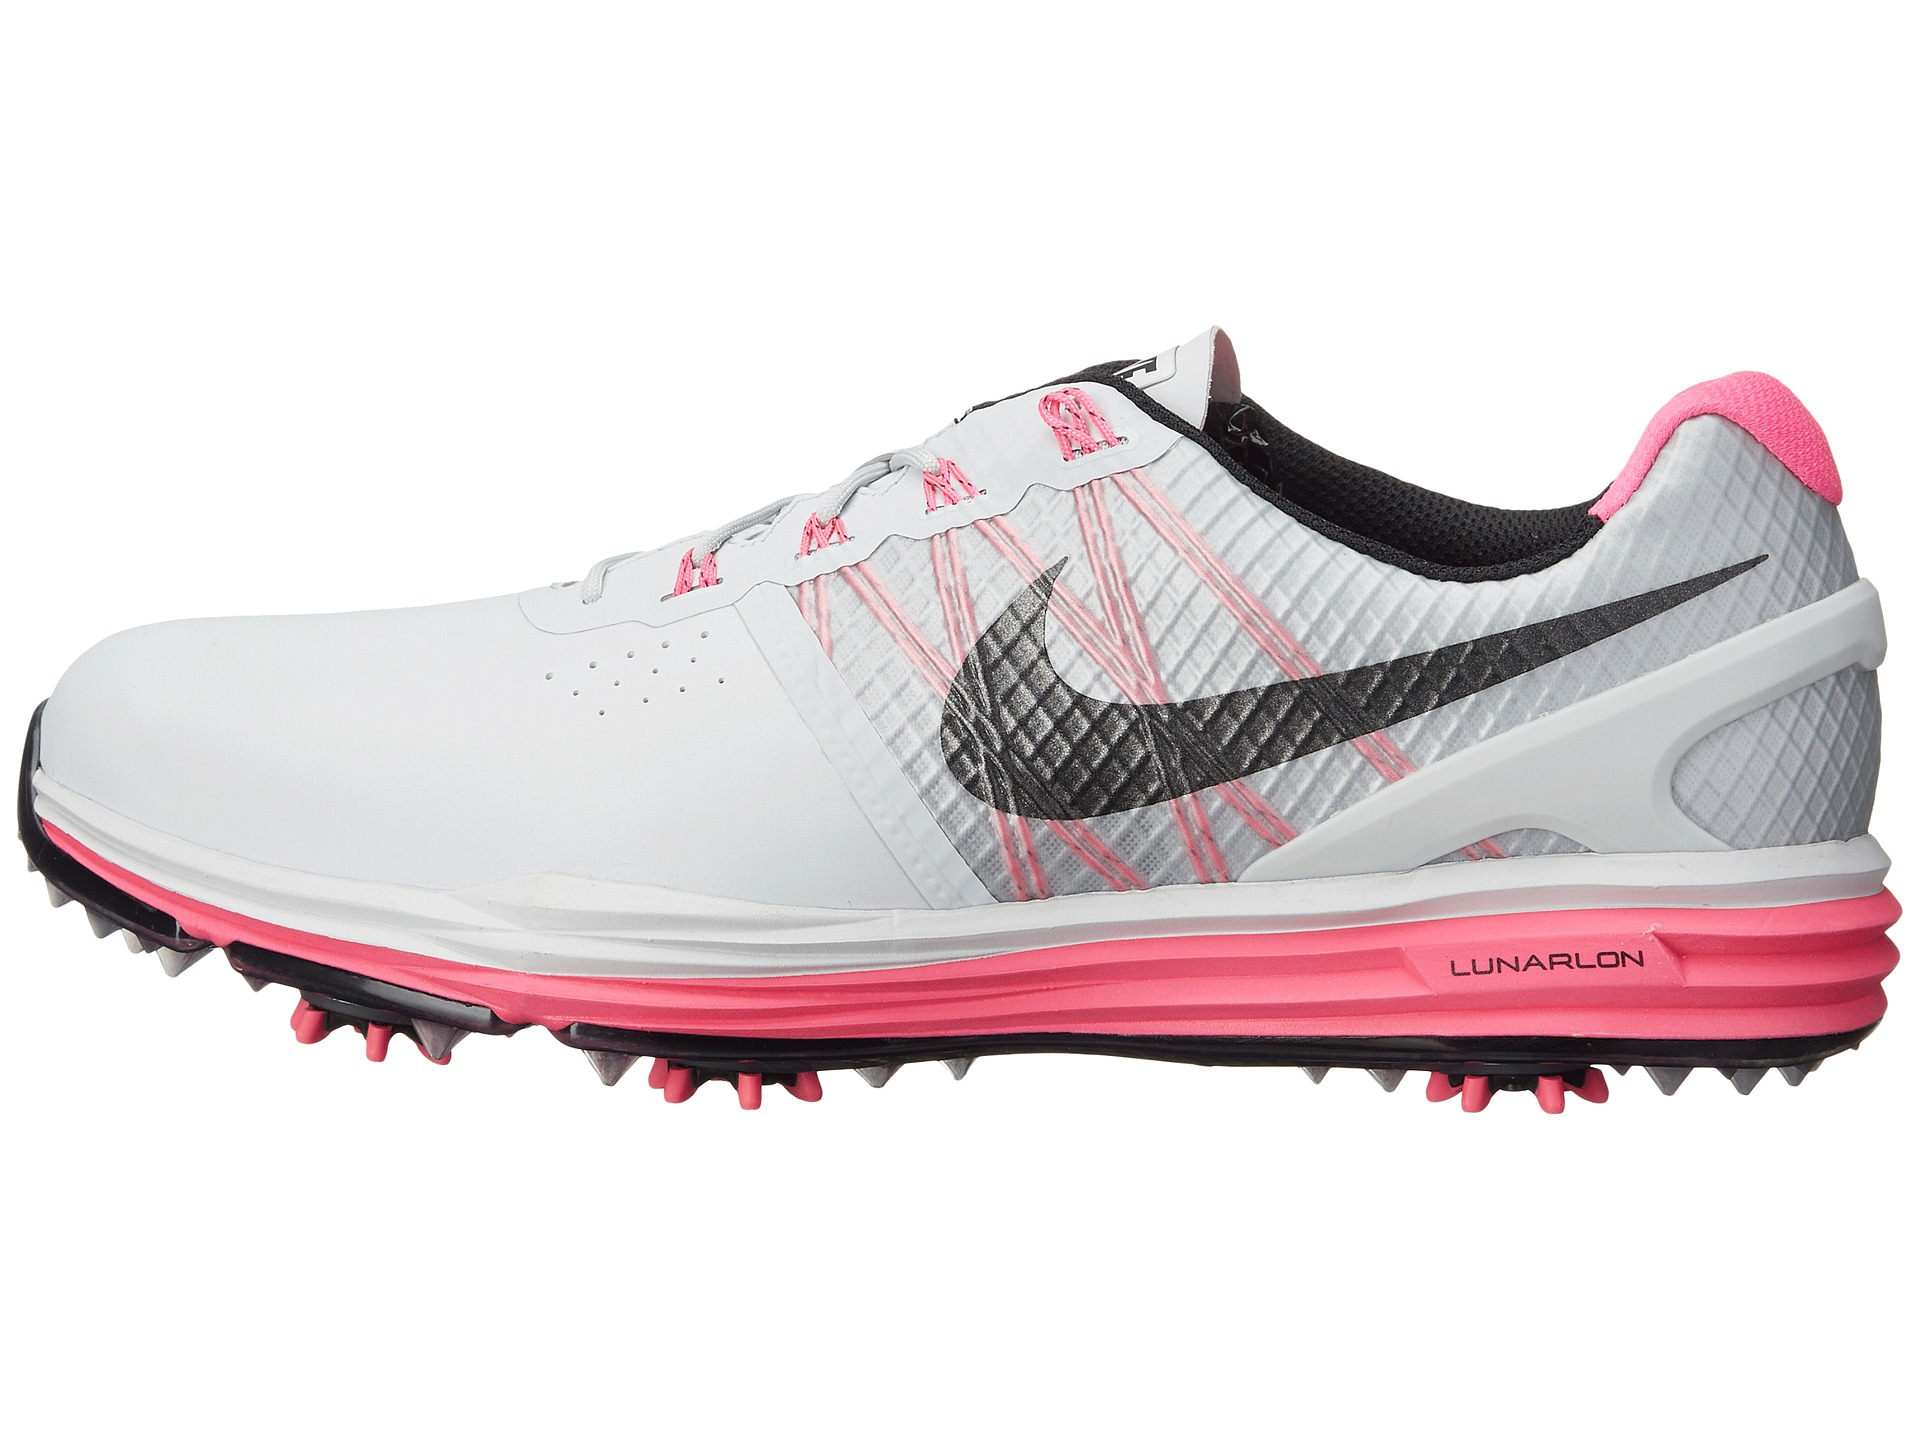 pick up 0bca0 e5a10 nike lunar control 3 limited edition for sale